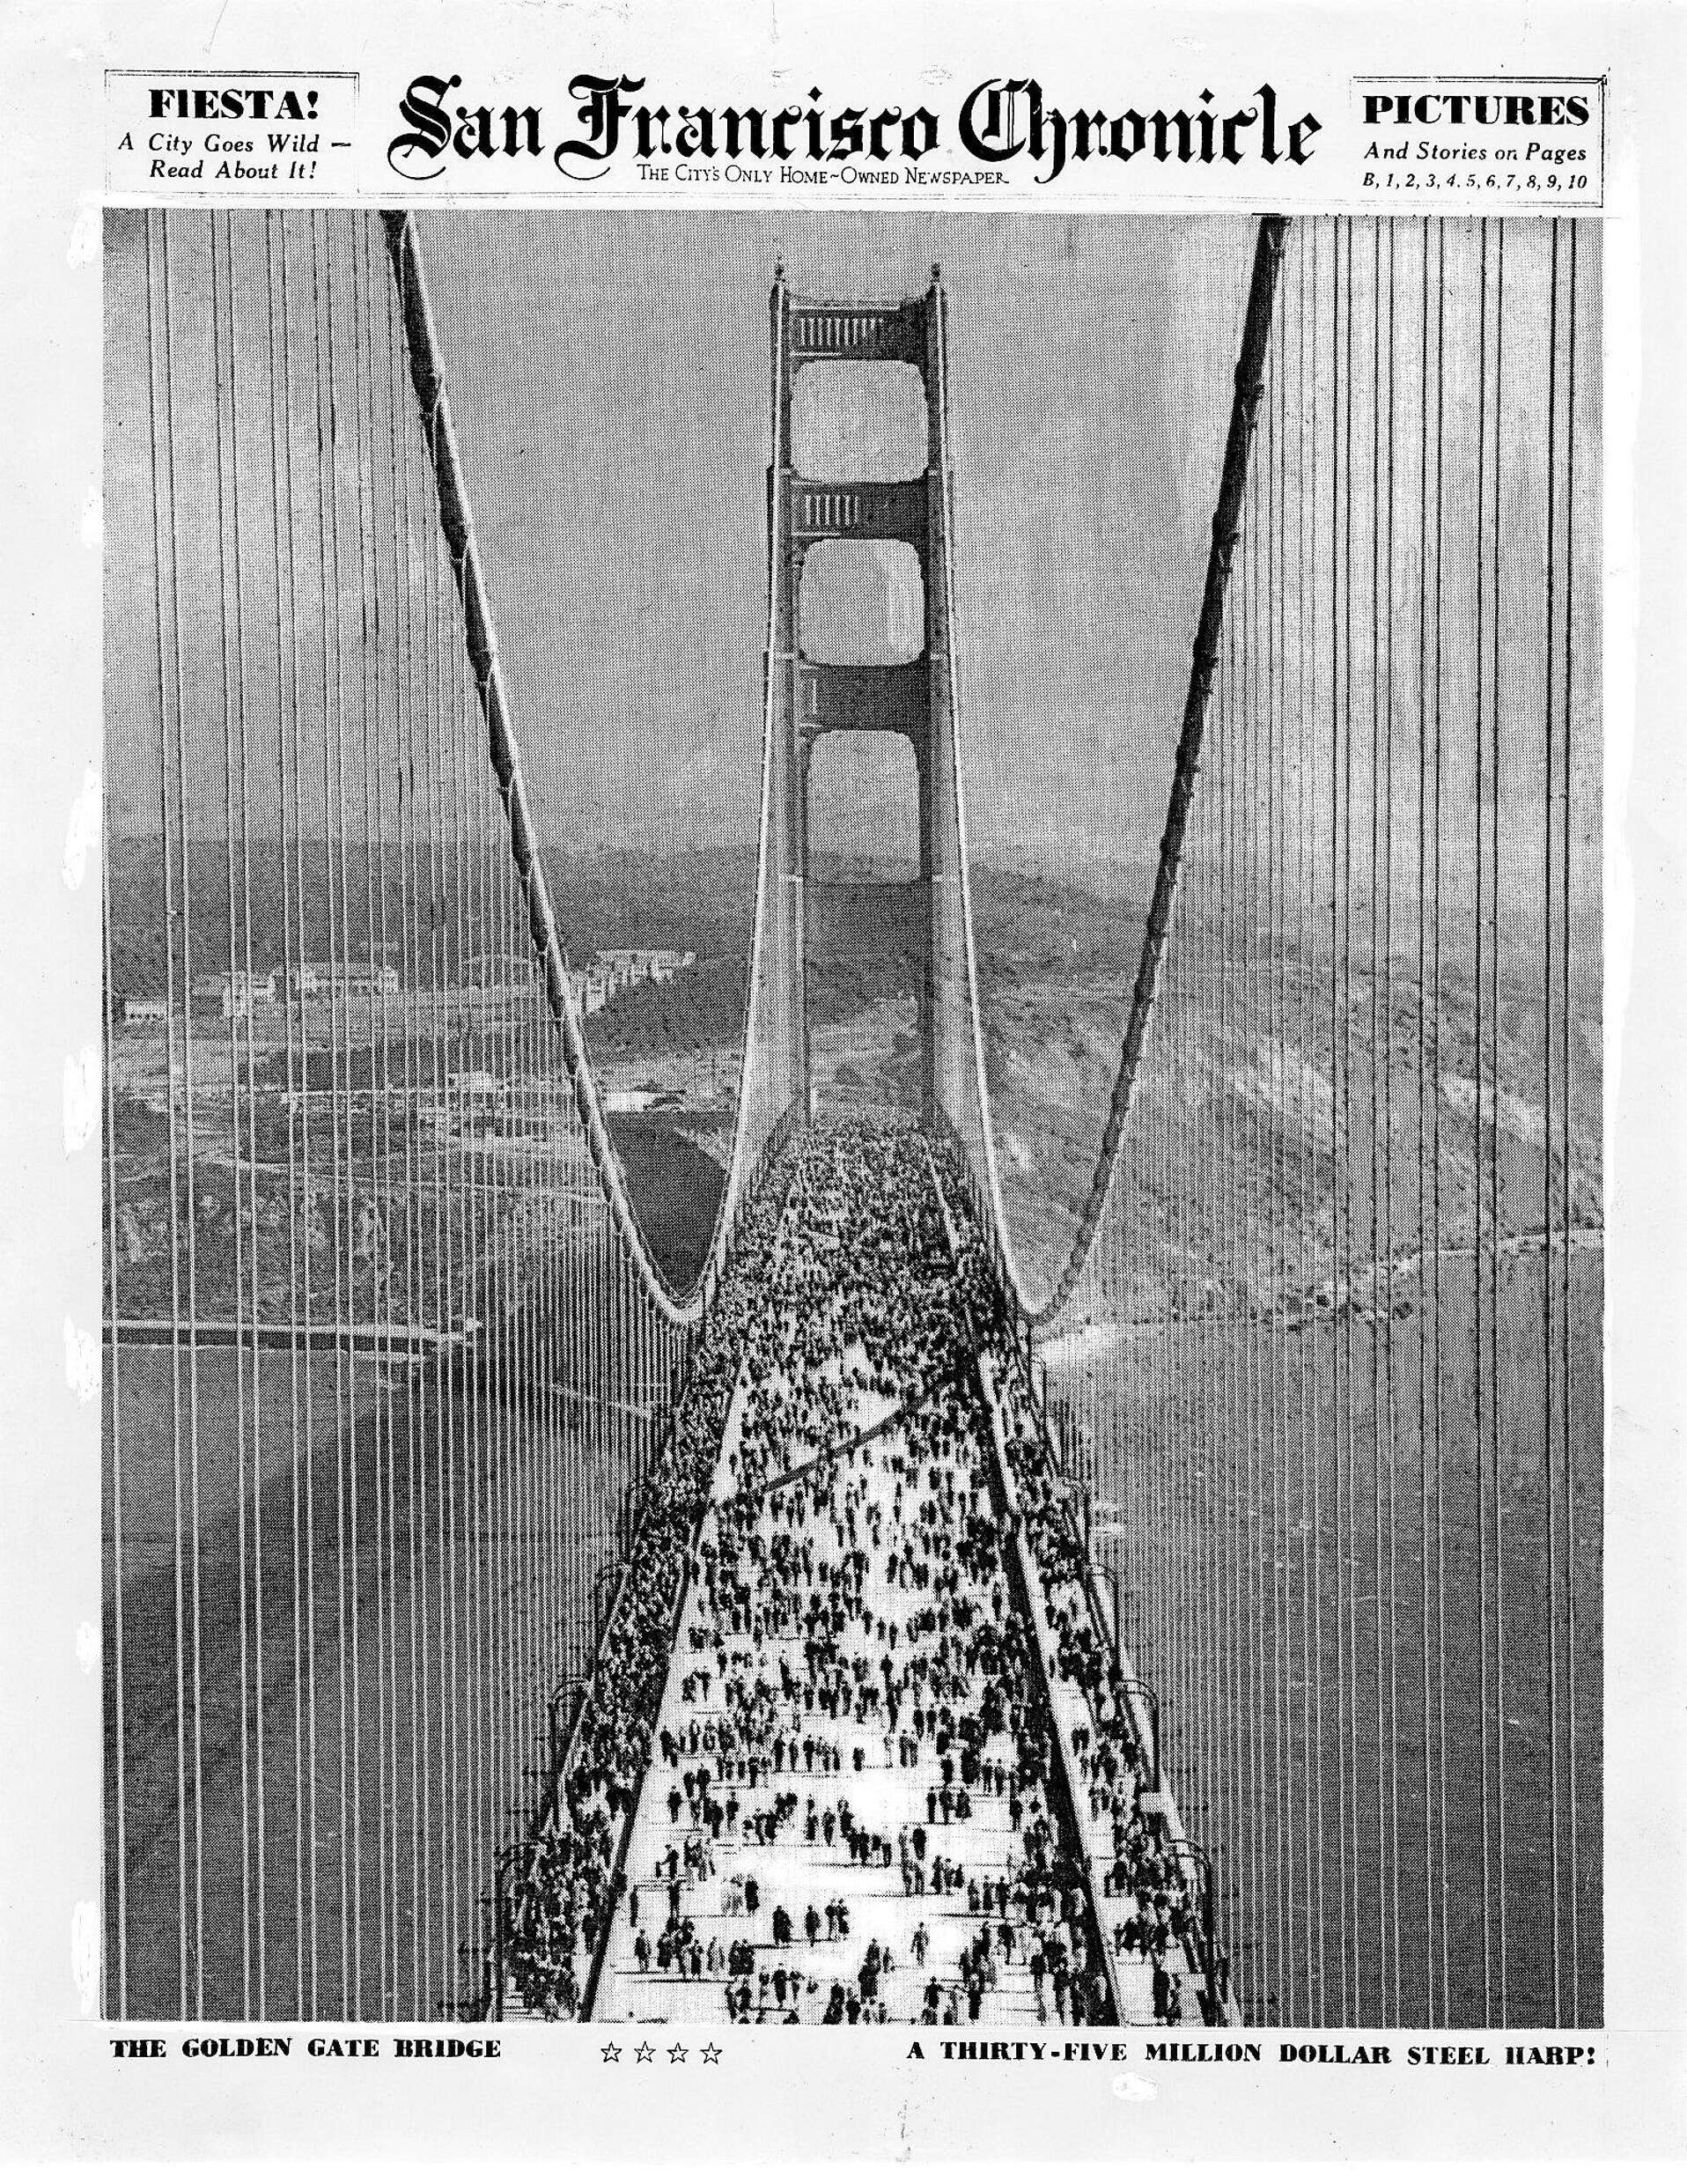 The Golden Gate Bridge S Final Plans Were Just Right An Art Deco Masterpiece That Served As A Timeless Architecture And Engineering Triumph